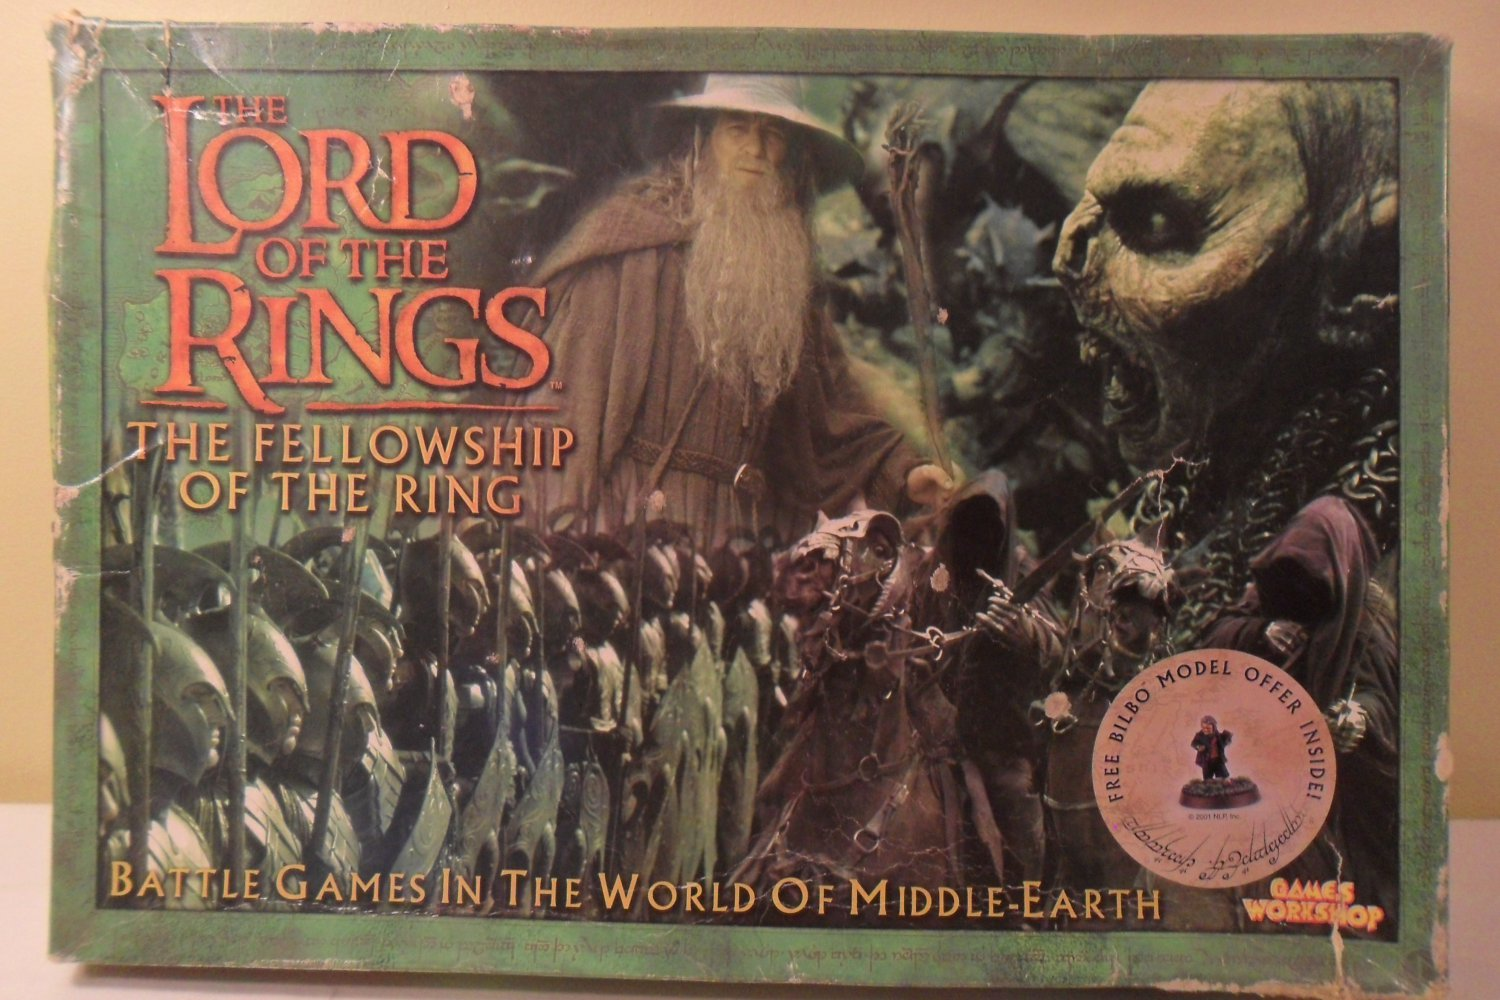 2001 The Lord Of The Rings Board Game The Fellowship of the Ring complete